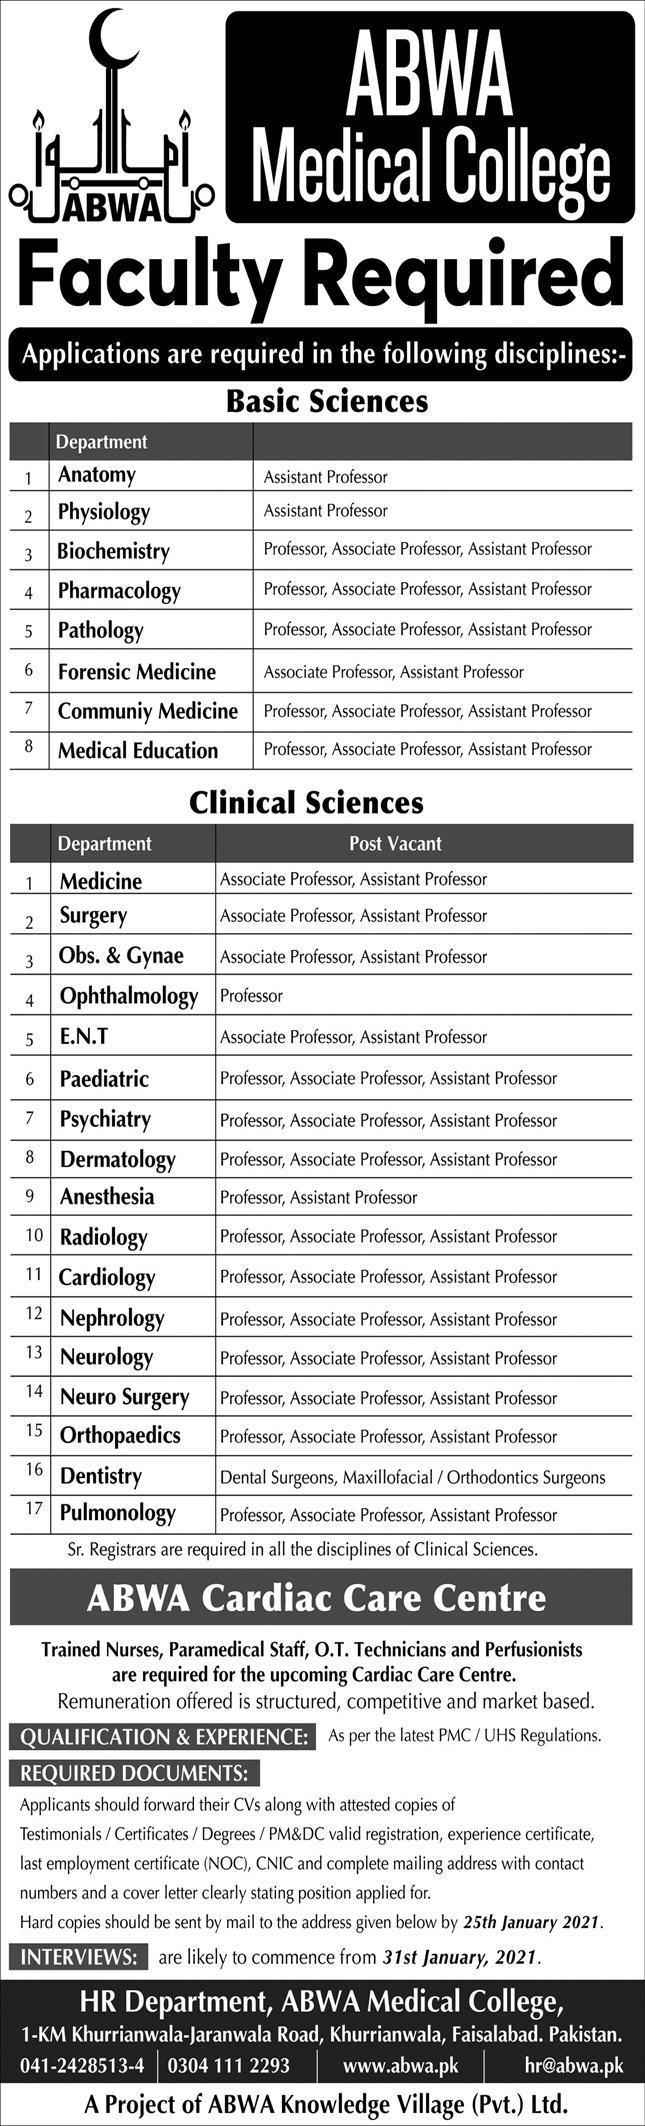 ABWA Medical College Jobs in Faisalabad